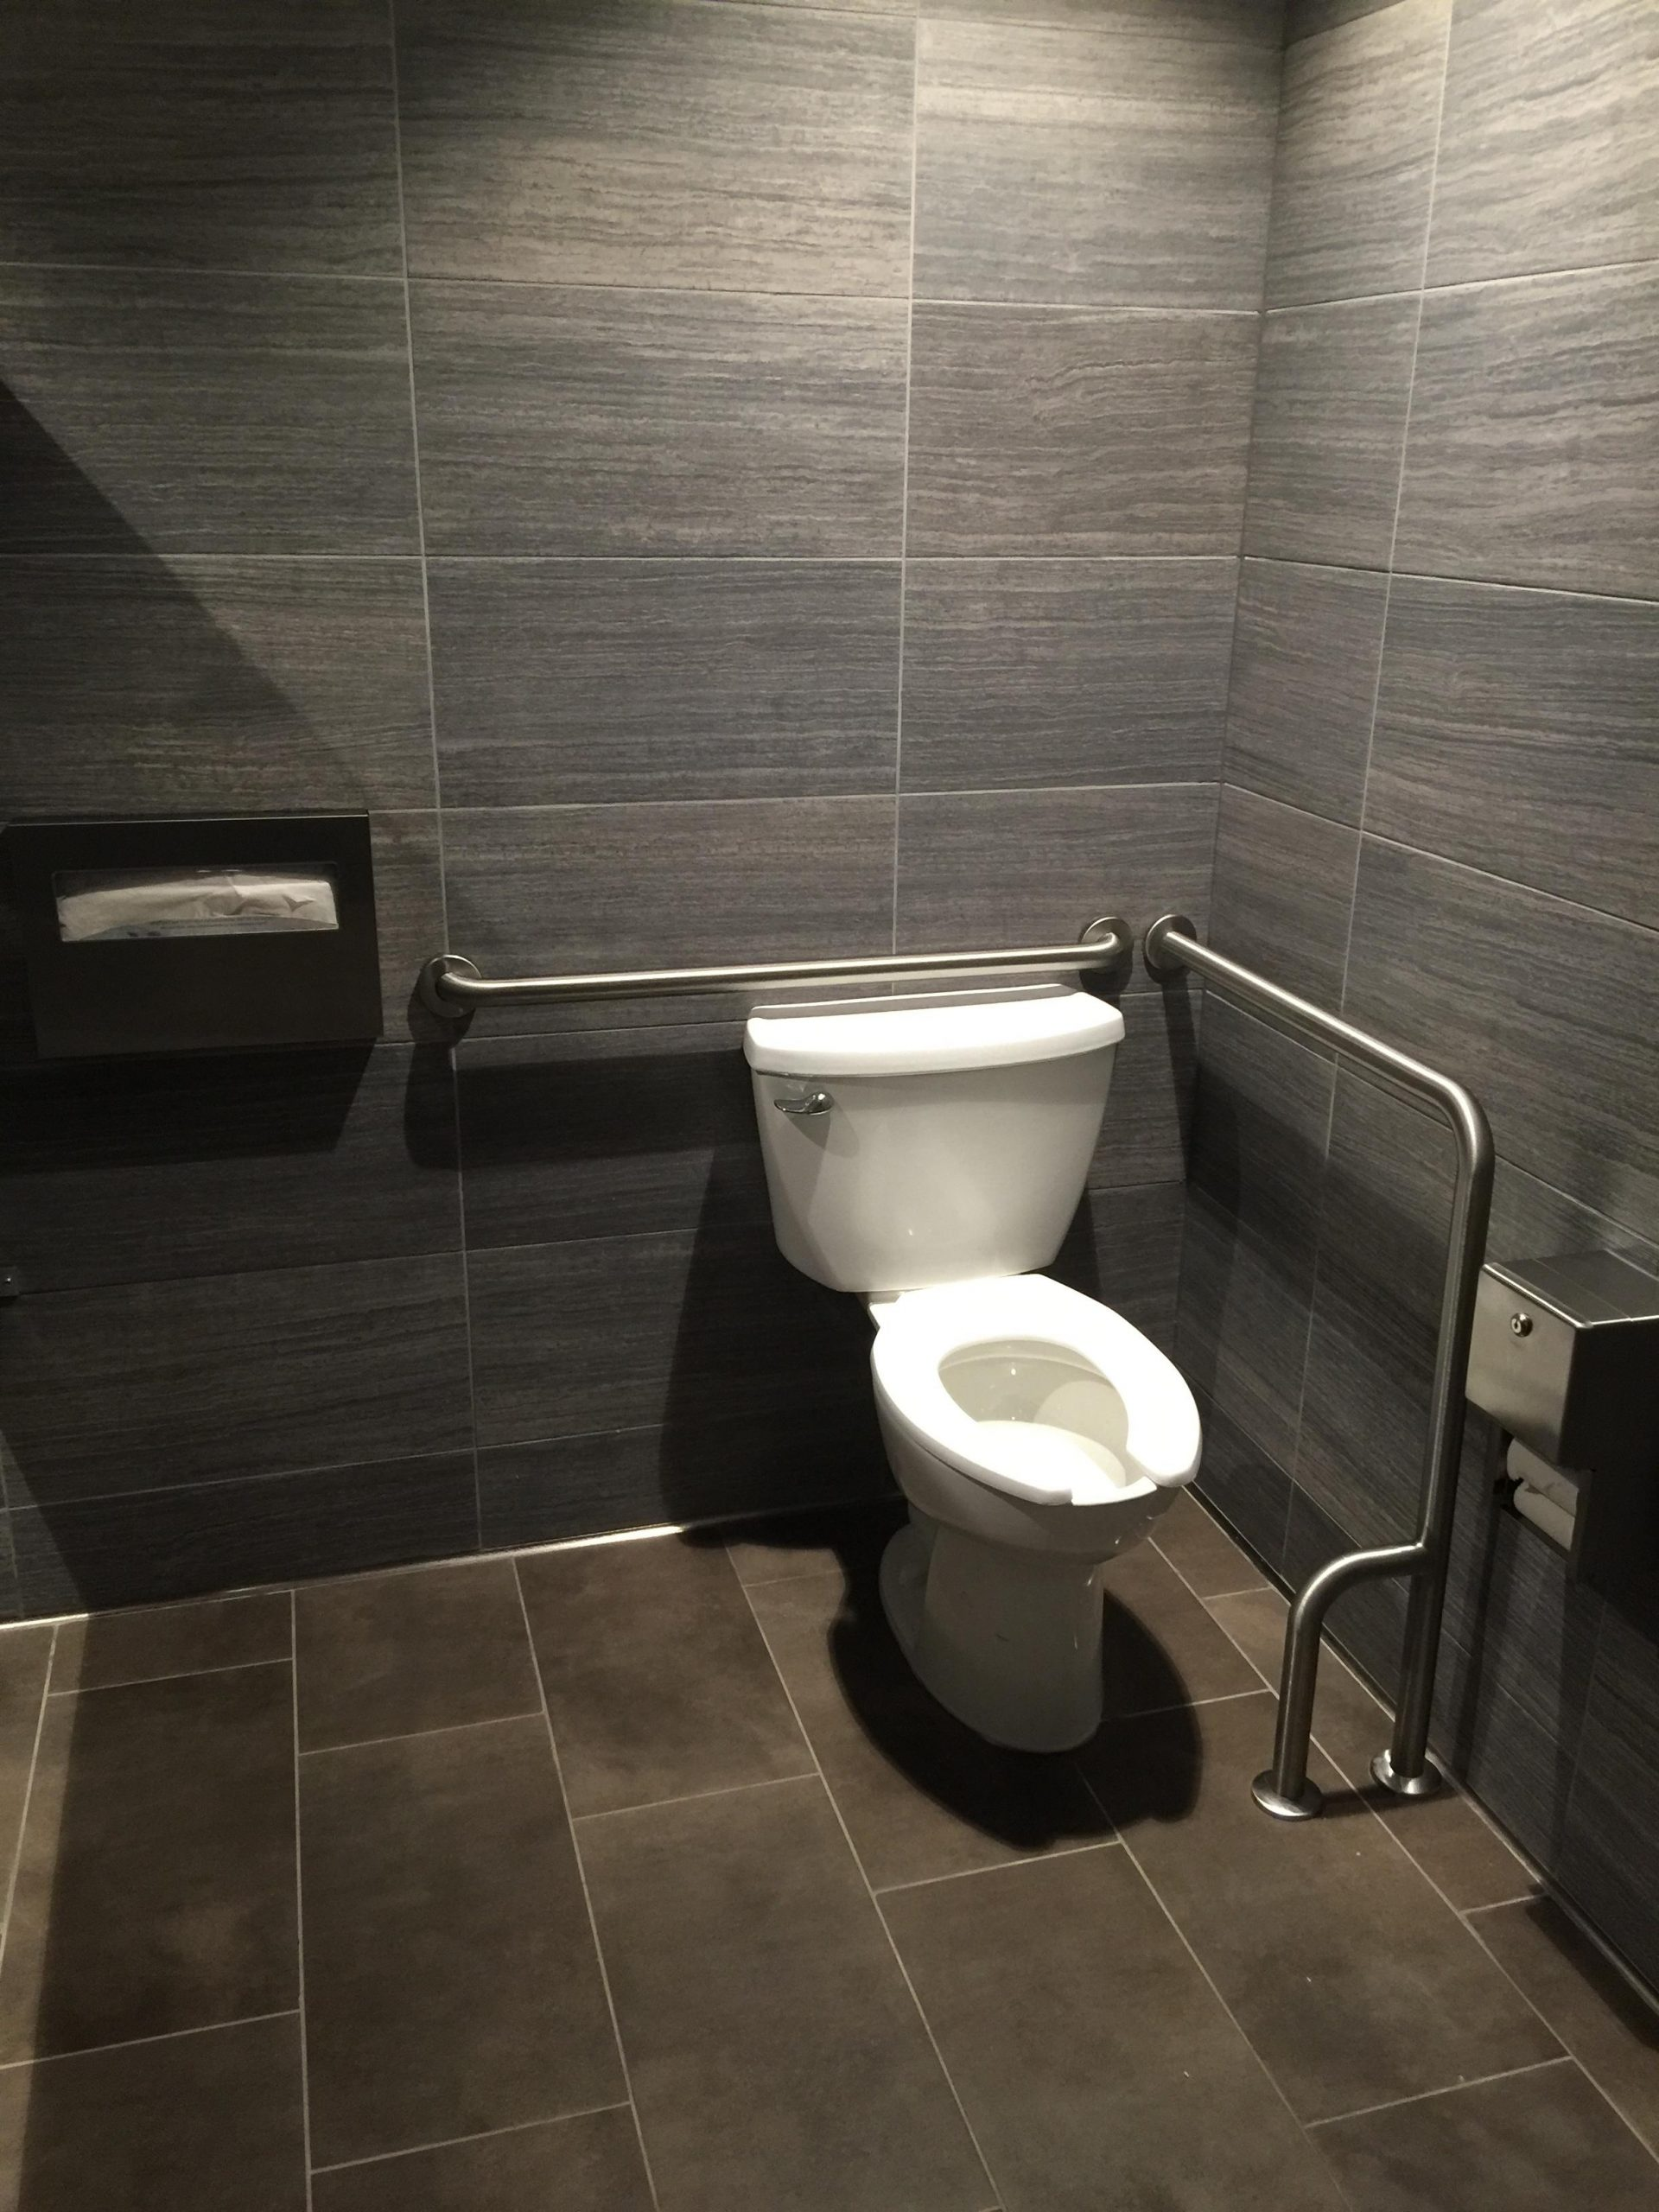 Ada Restroom Requirements: What Is Wrong With This Picture? 10+ Ada Bathroom Design Guidelines Ideas